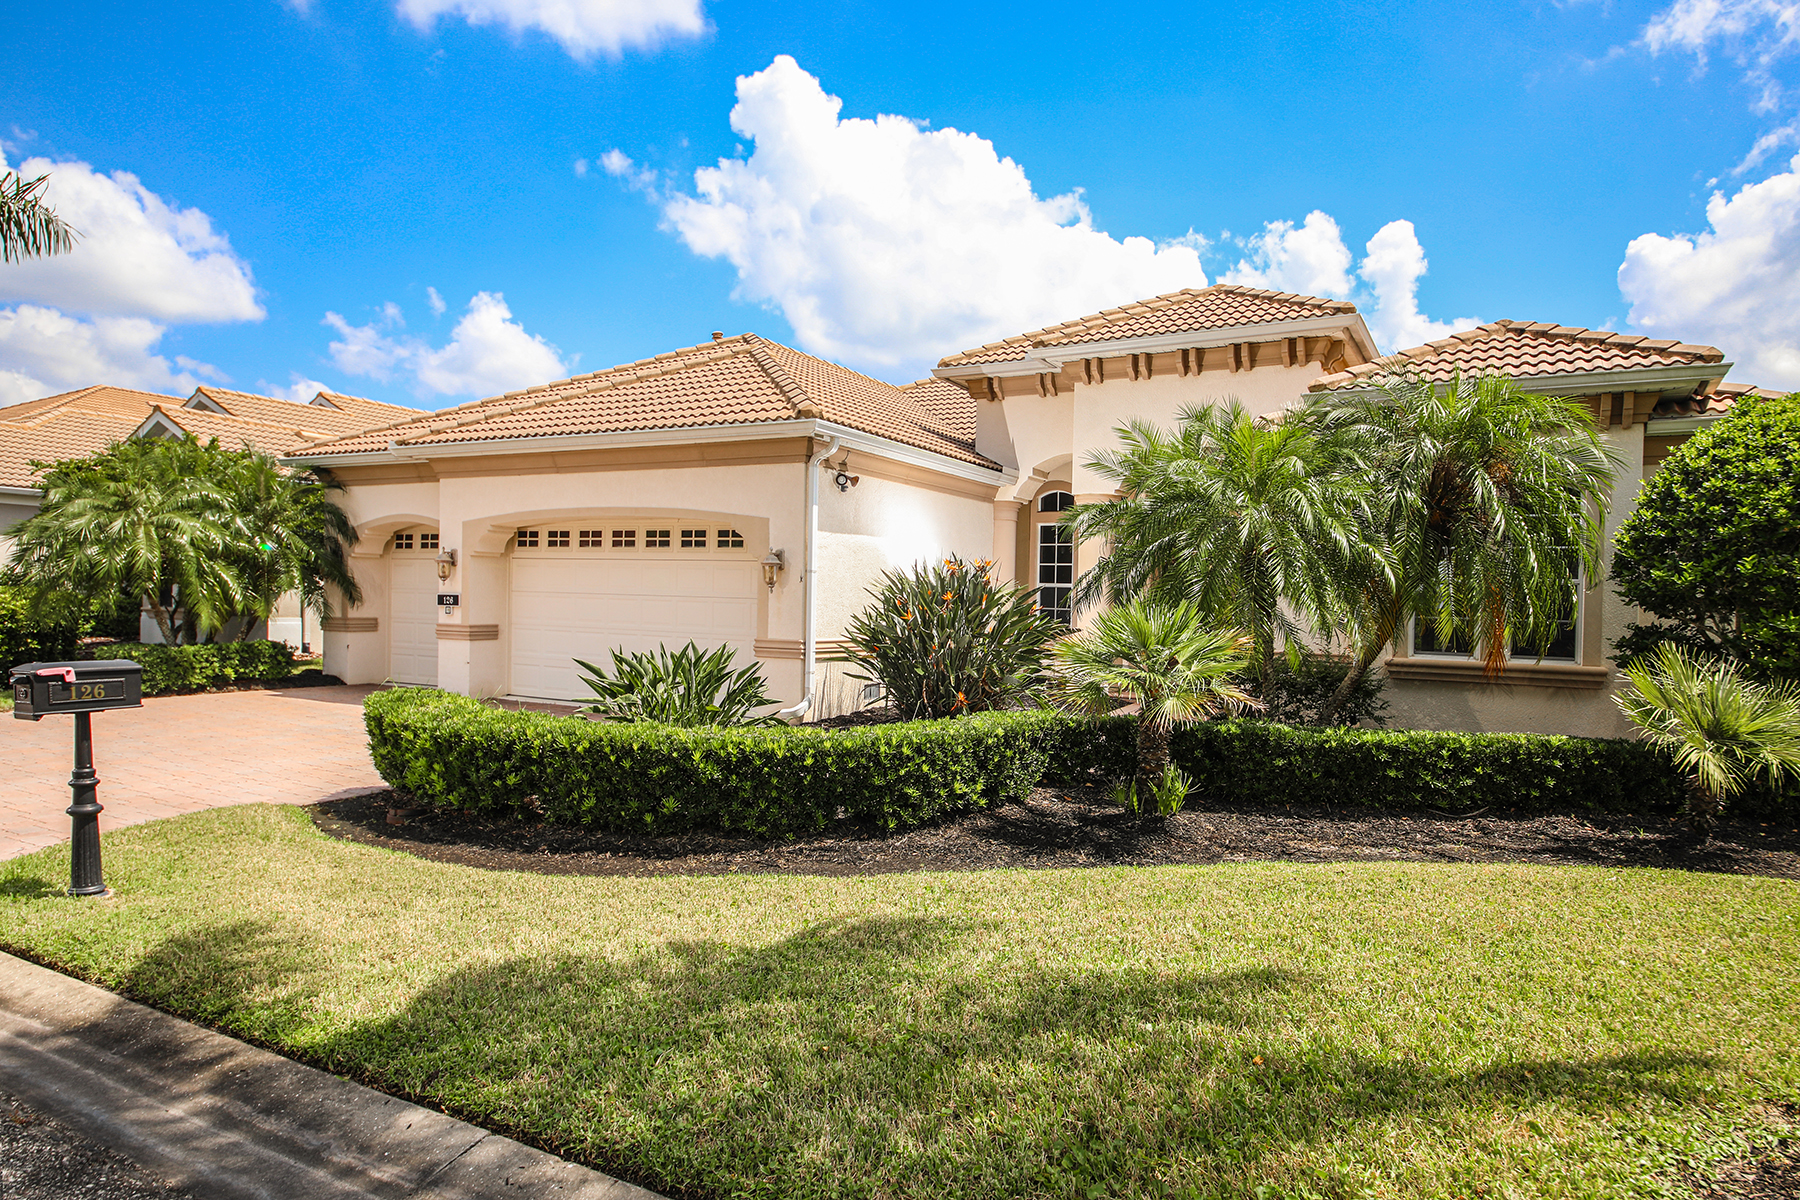 Single Family Homes for Sale at PENINSULA AT RIVIERA DUNES 126 12th Ave E, Palmetto, Florida 34221 United States